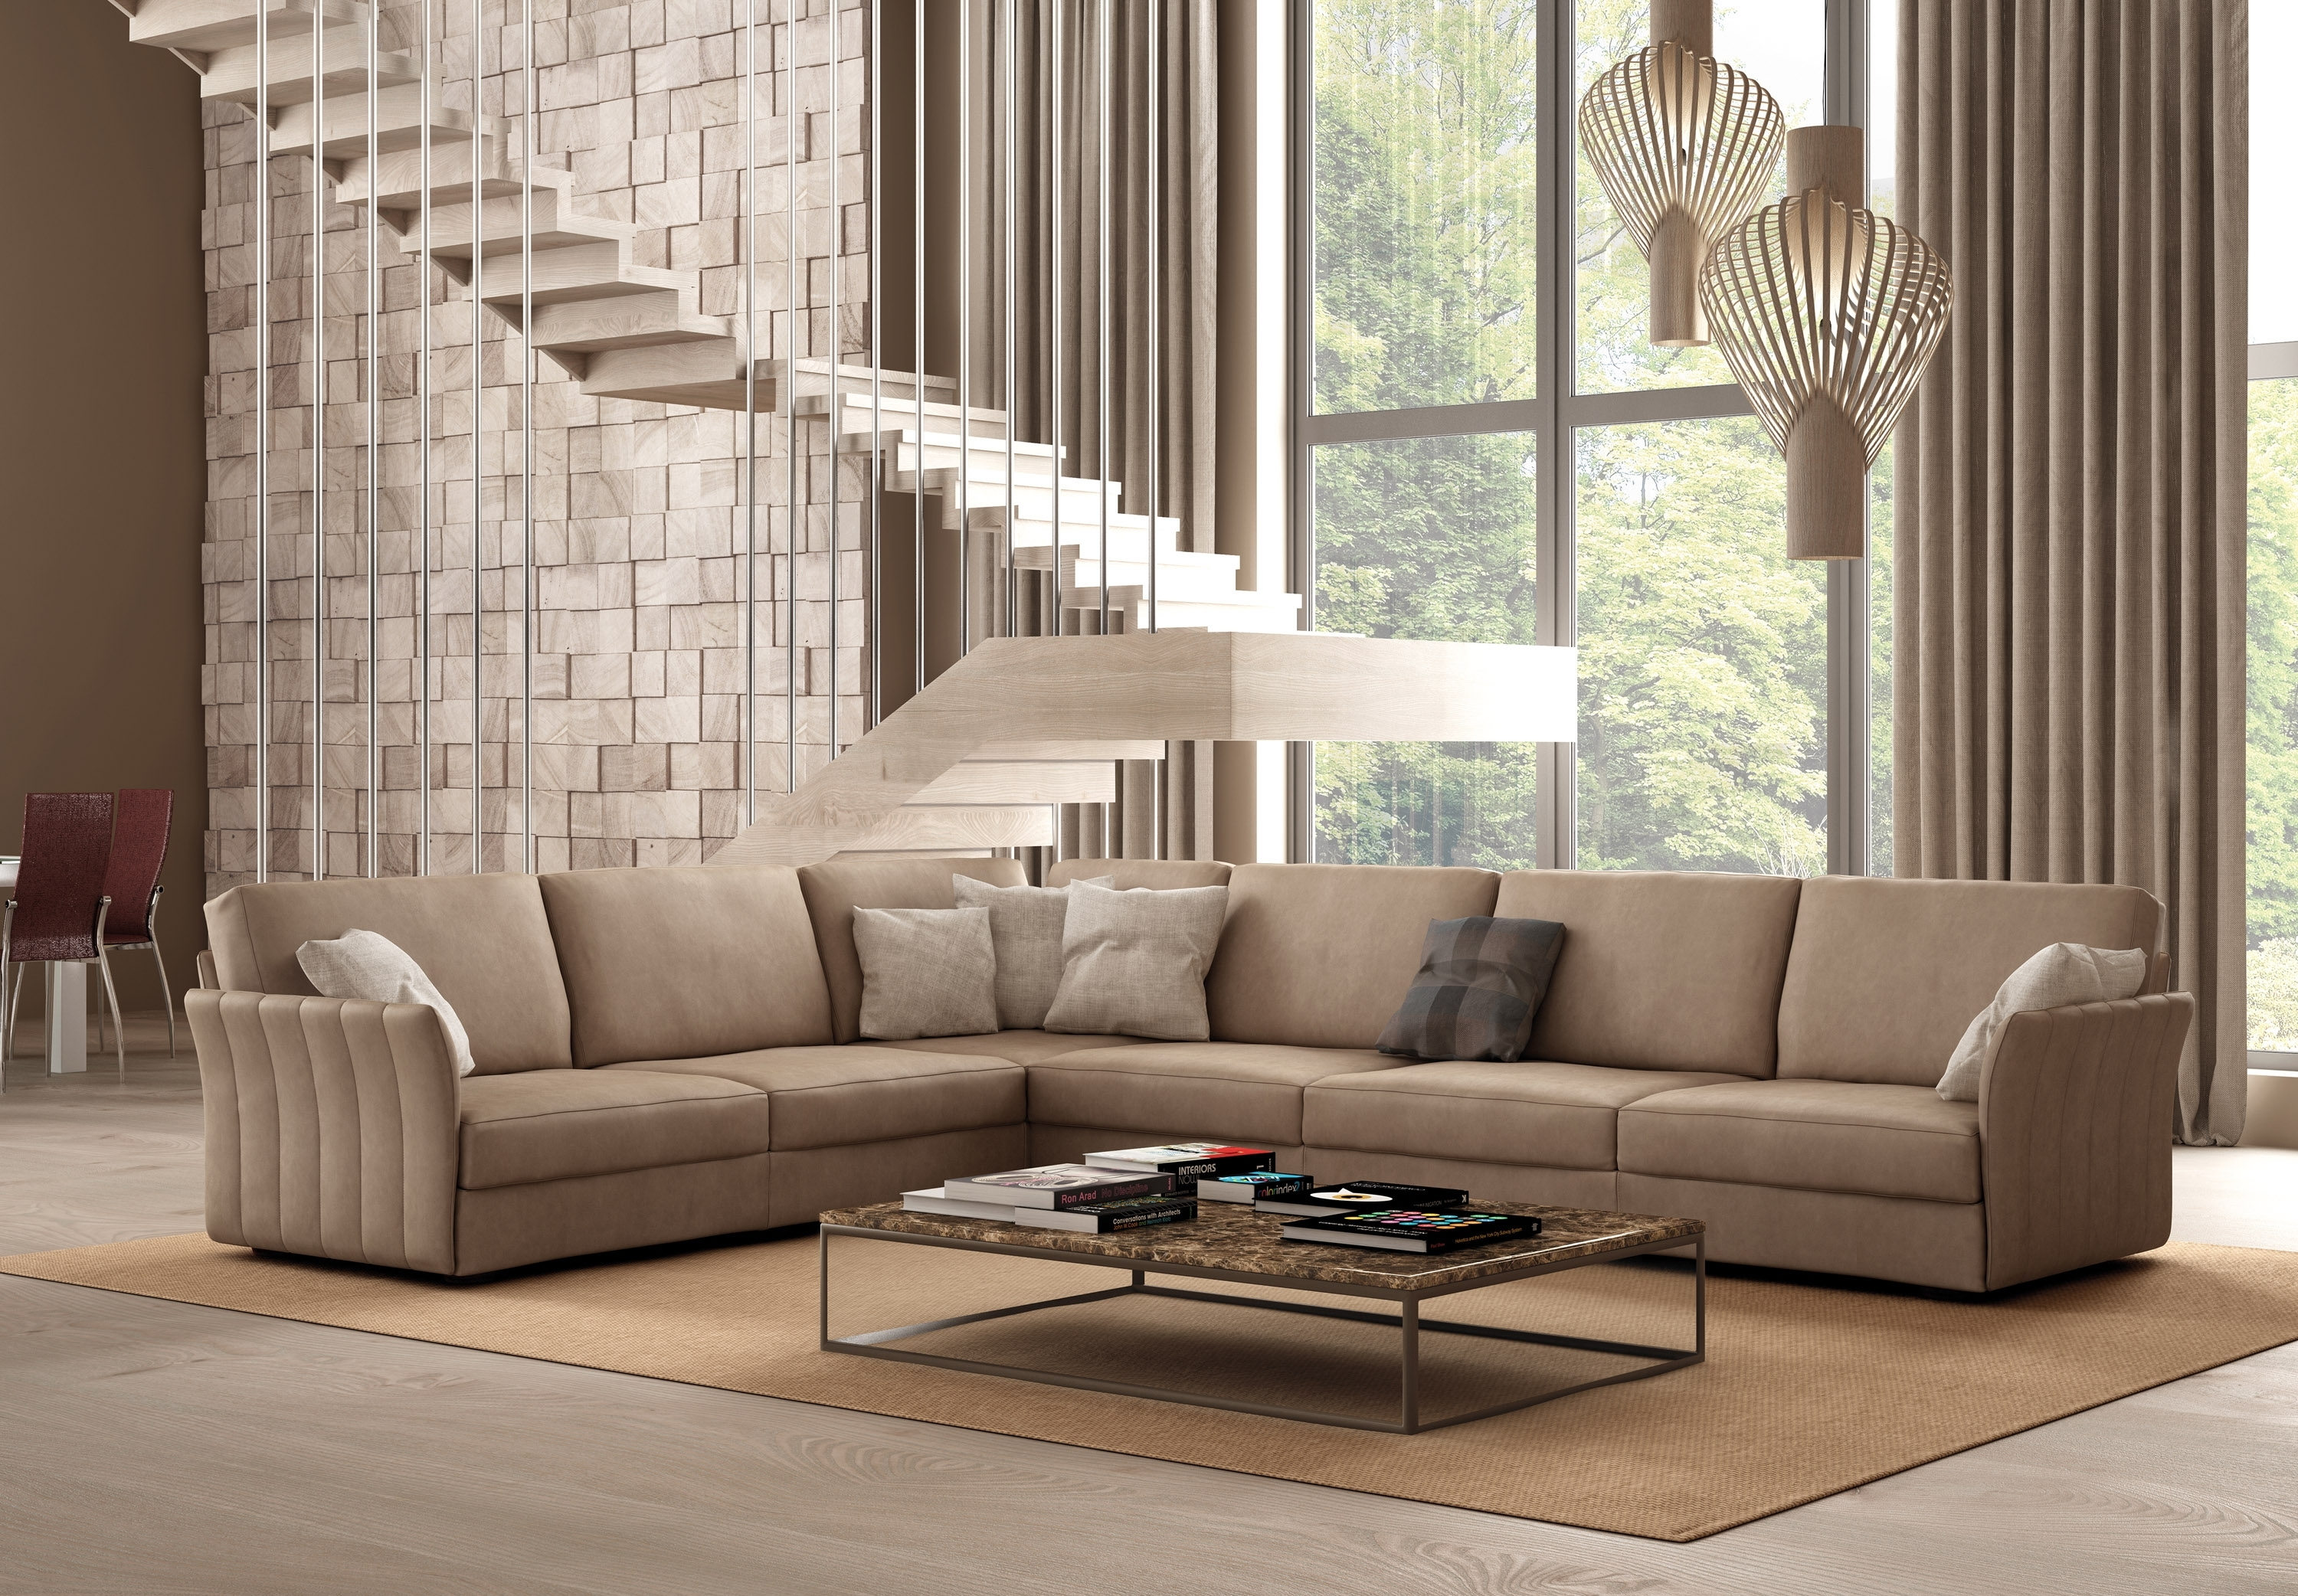 Widely Used Sectional Sofas With High Backs In Italian Sectional Sofa Set In Luxury Leather Fort Worth Texas Idp (View 11 of 15)